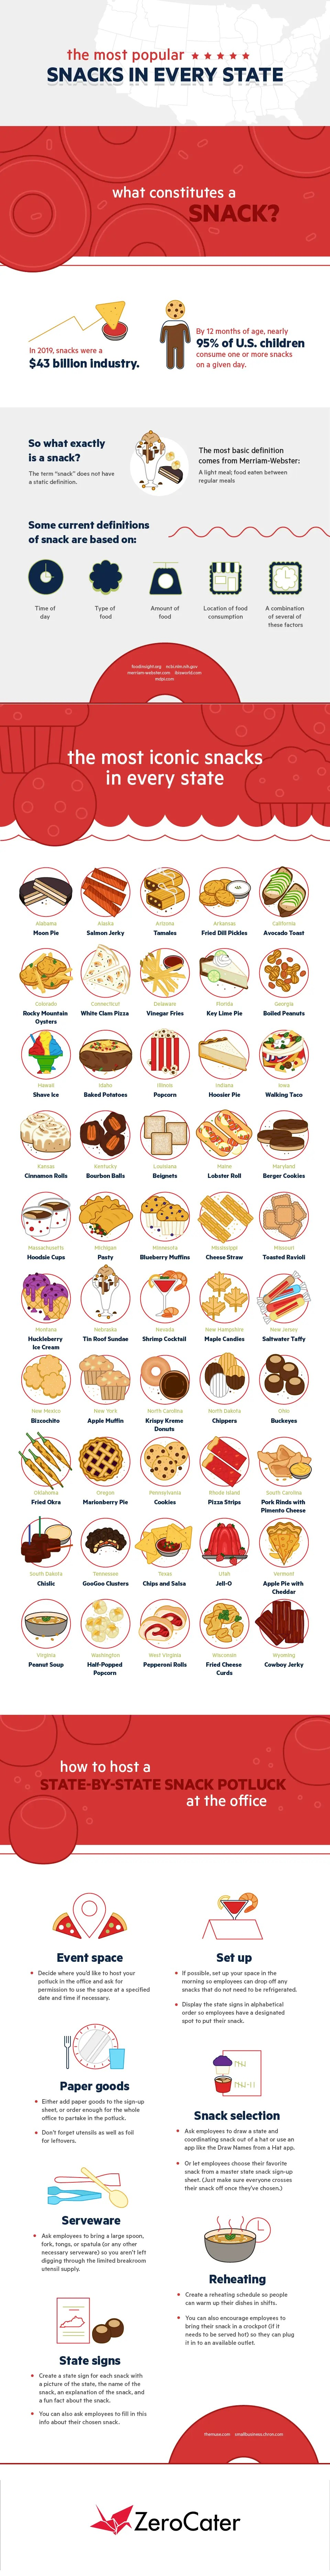 The Most Popular Snacks in Every State